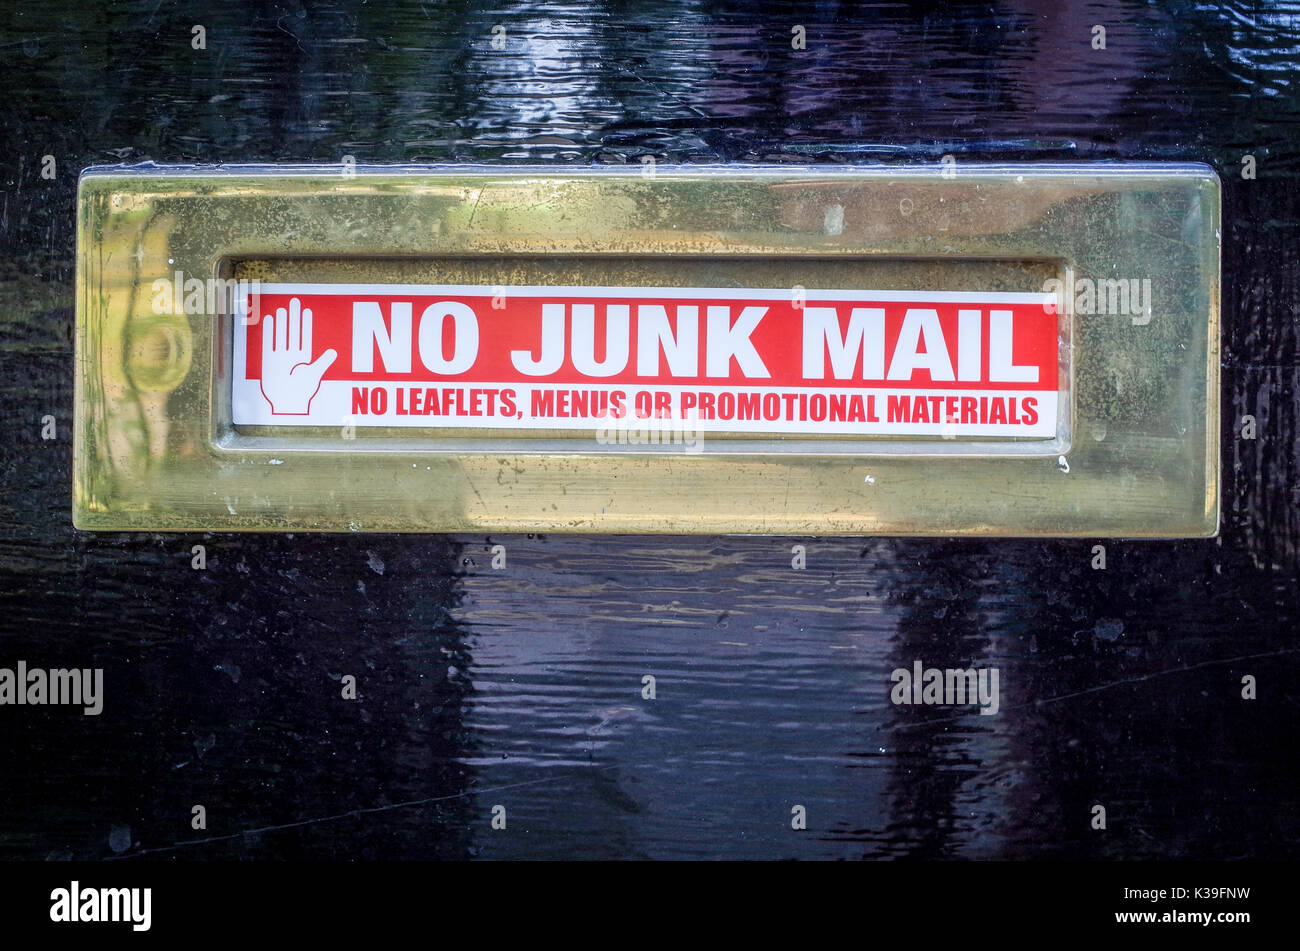 No Junk Mail sticker on a Letter Box - No Leaflets, Menus or Promotional Materials - Stock Image